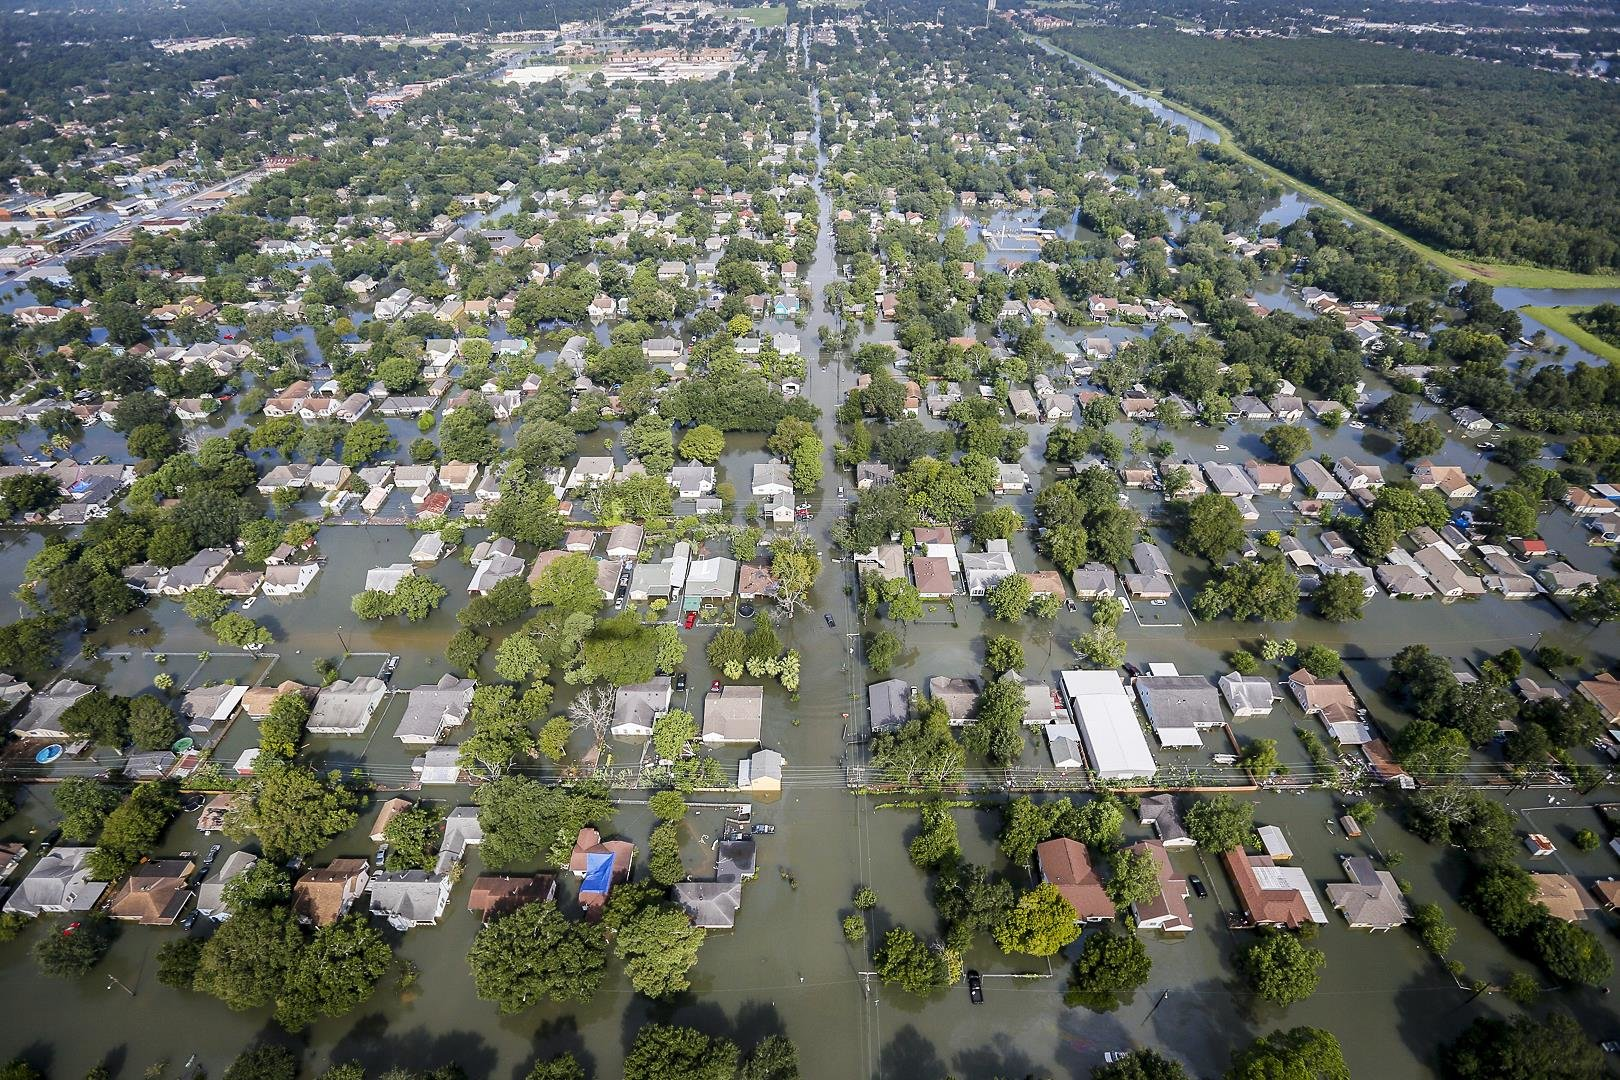 Hurricane Harvey: Research shows most fatalities occurred outside flood zones